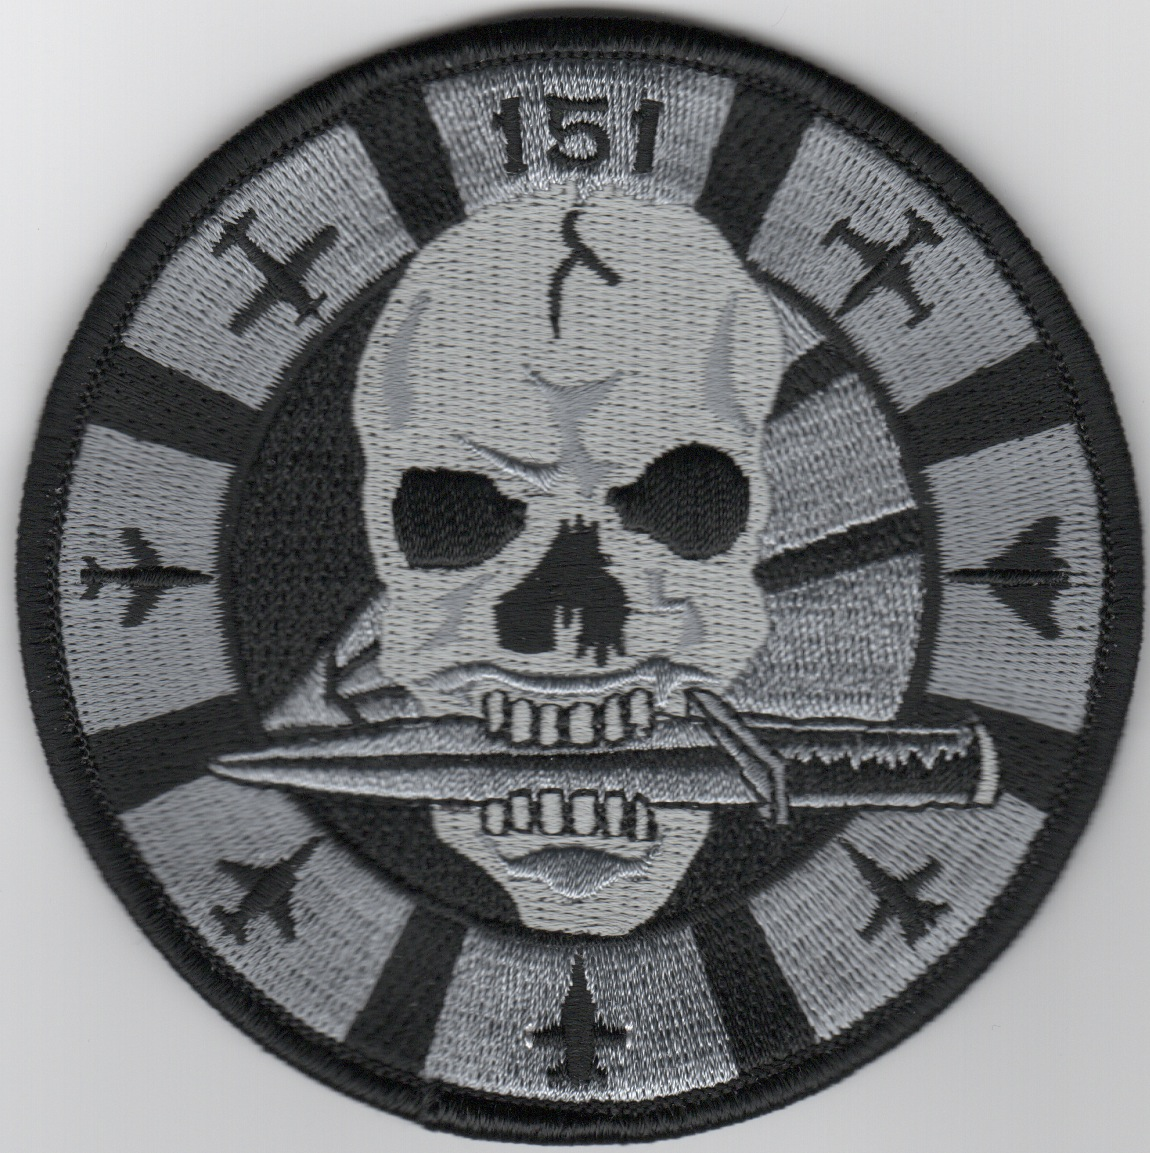 VFA-151 'Skull' Bullet Patch (Lrg/Blk-Gry/AC/No Velcro)